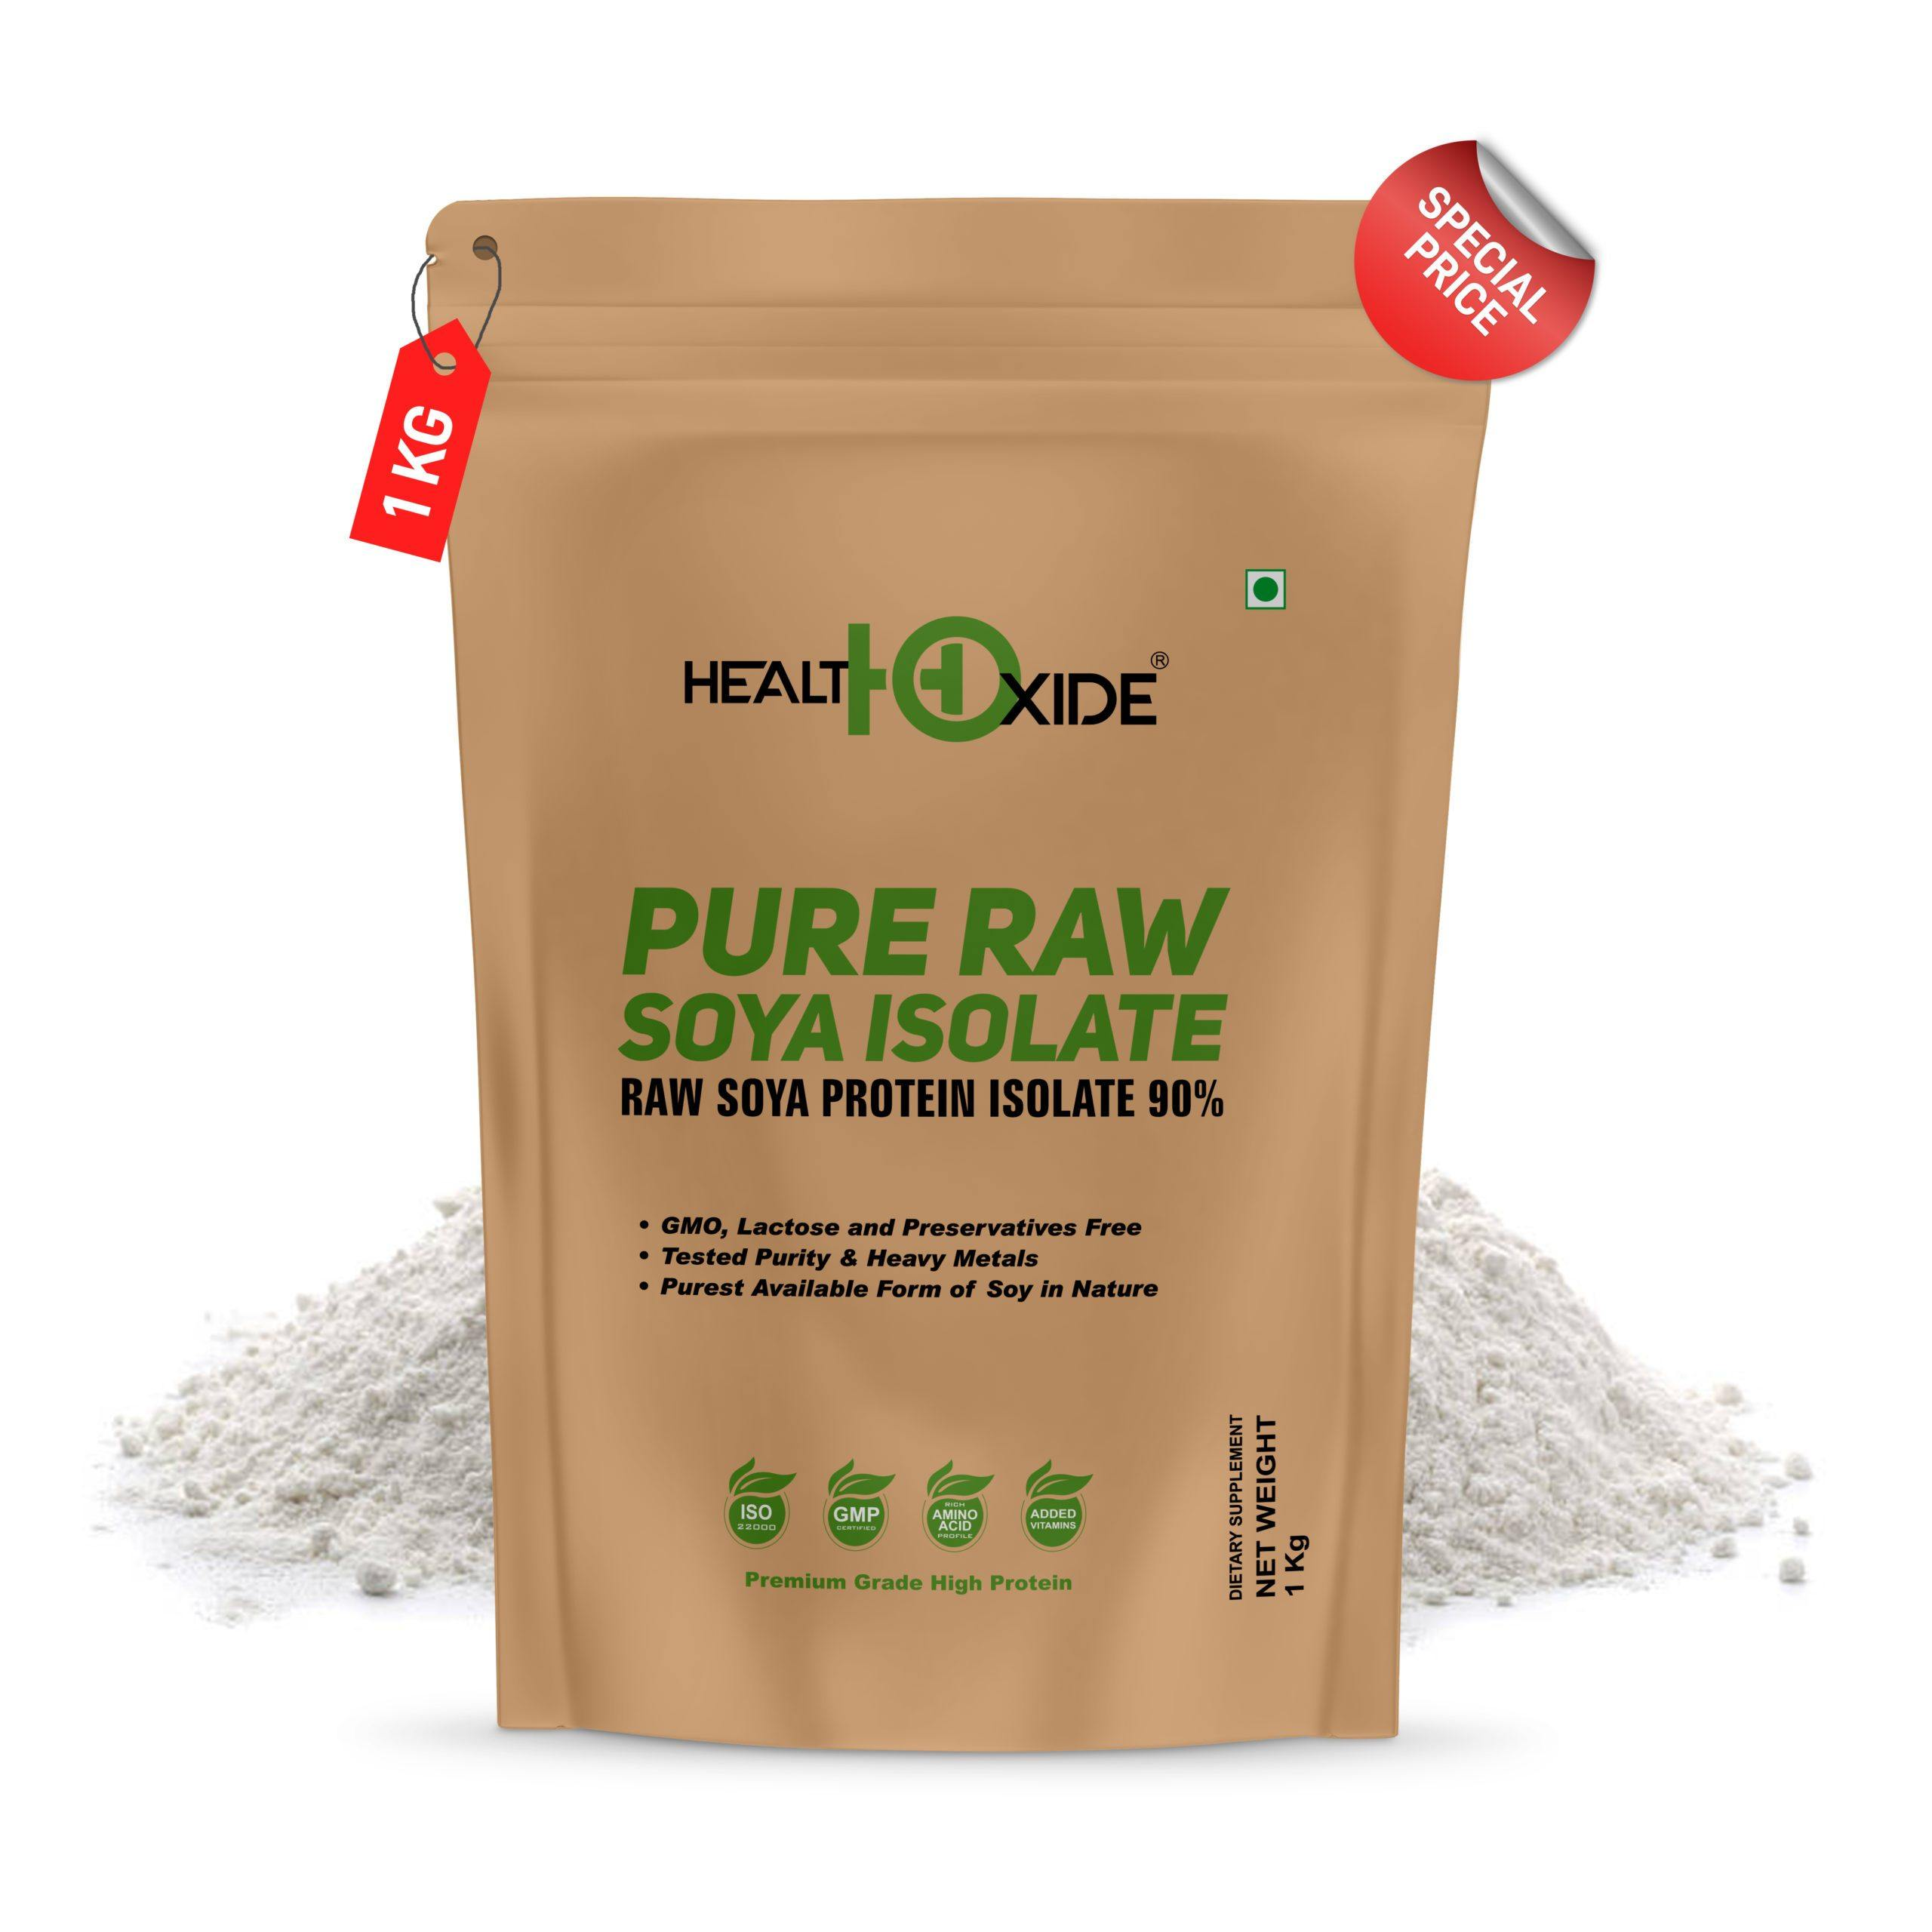 Pure Raw Soya Isolate 90% Protein Powder (Raw & Unflavored), 1 kg - HealthOxide